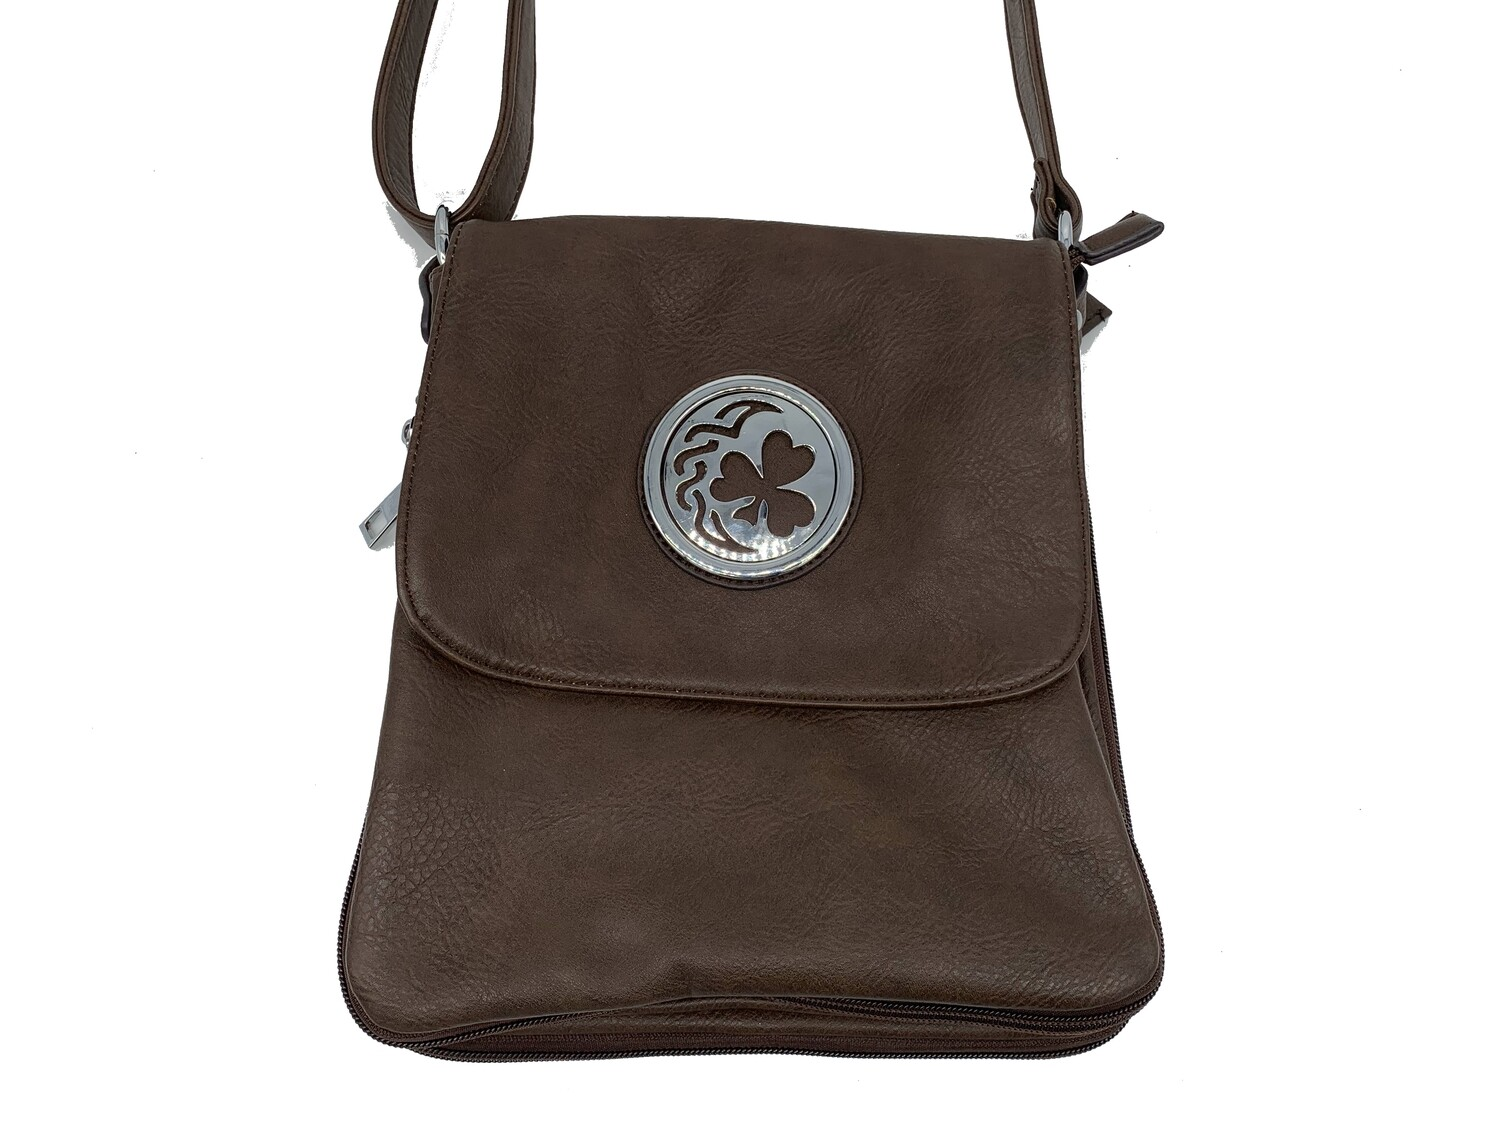 503 Expandale Zip Around Bag  coffee